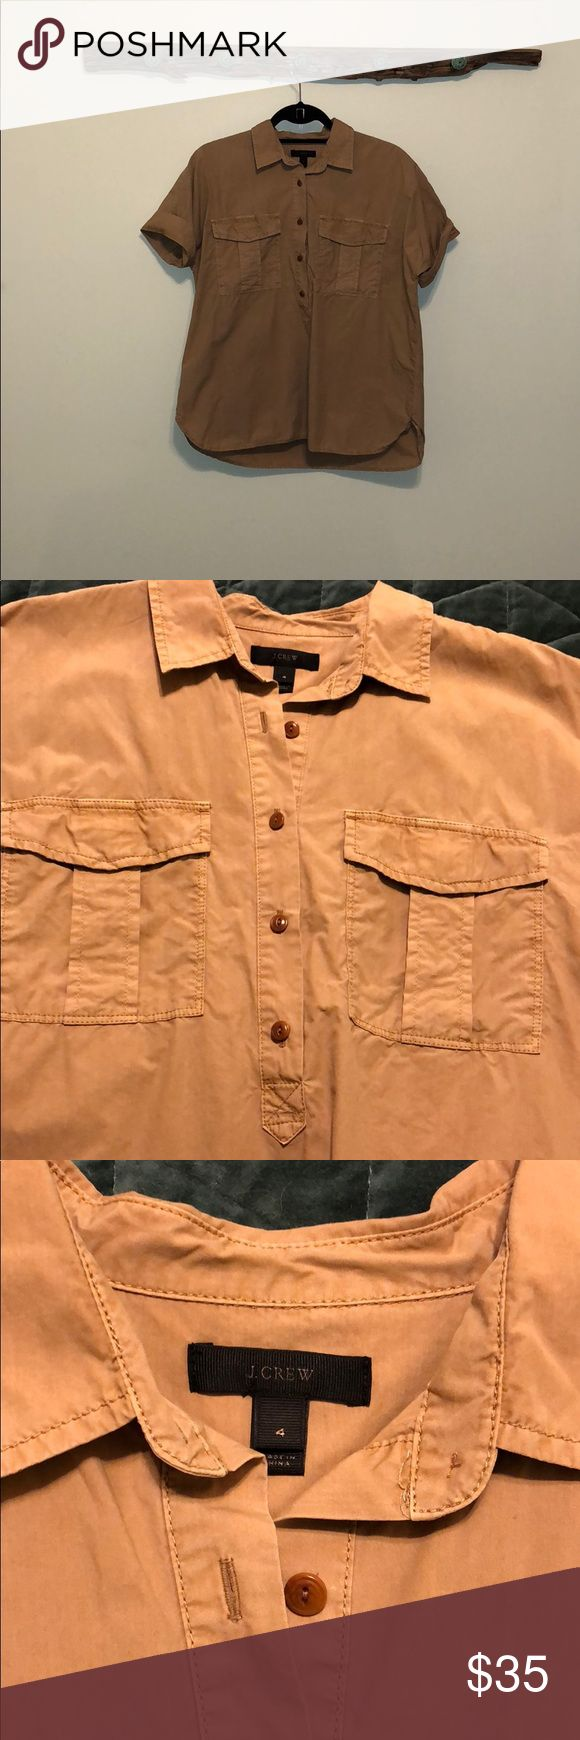 J. Crew Camel Colored Safari Shirt Flowy half button down safari shirt. Looks really cute with skinny jeans and flats in the summer or boots during cooler months. Love this shirt however it does have a wide fit. Worn a handful of times. J. Crew Tops Button Down Shirts